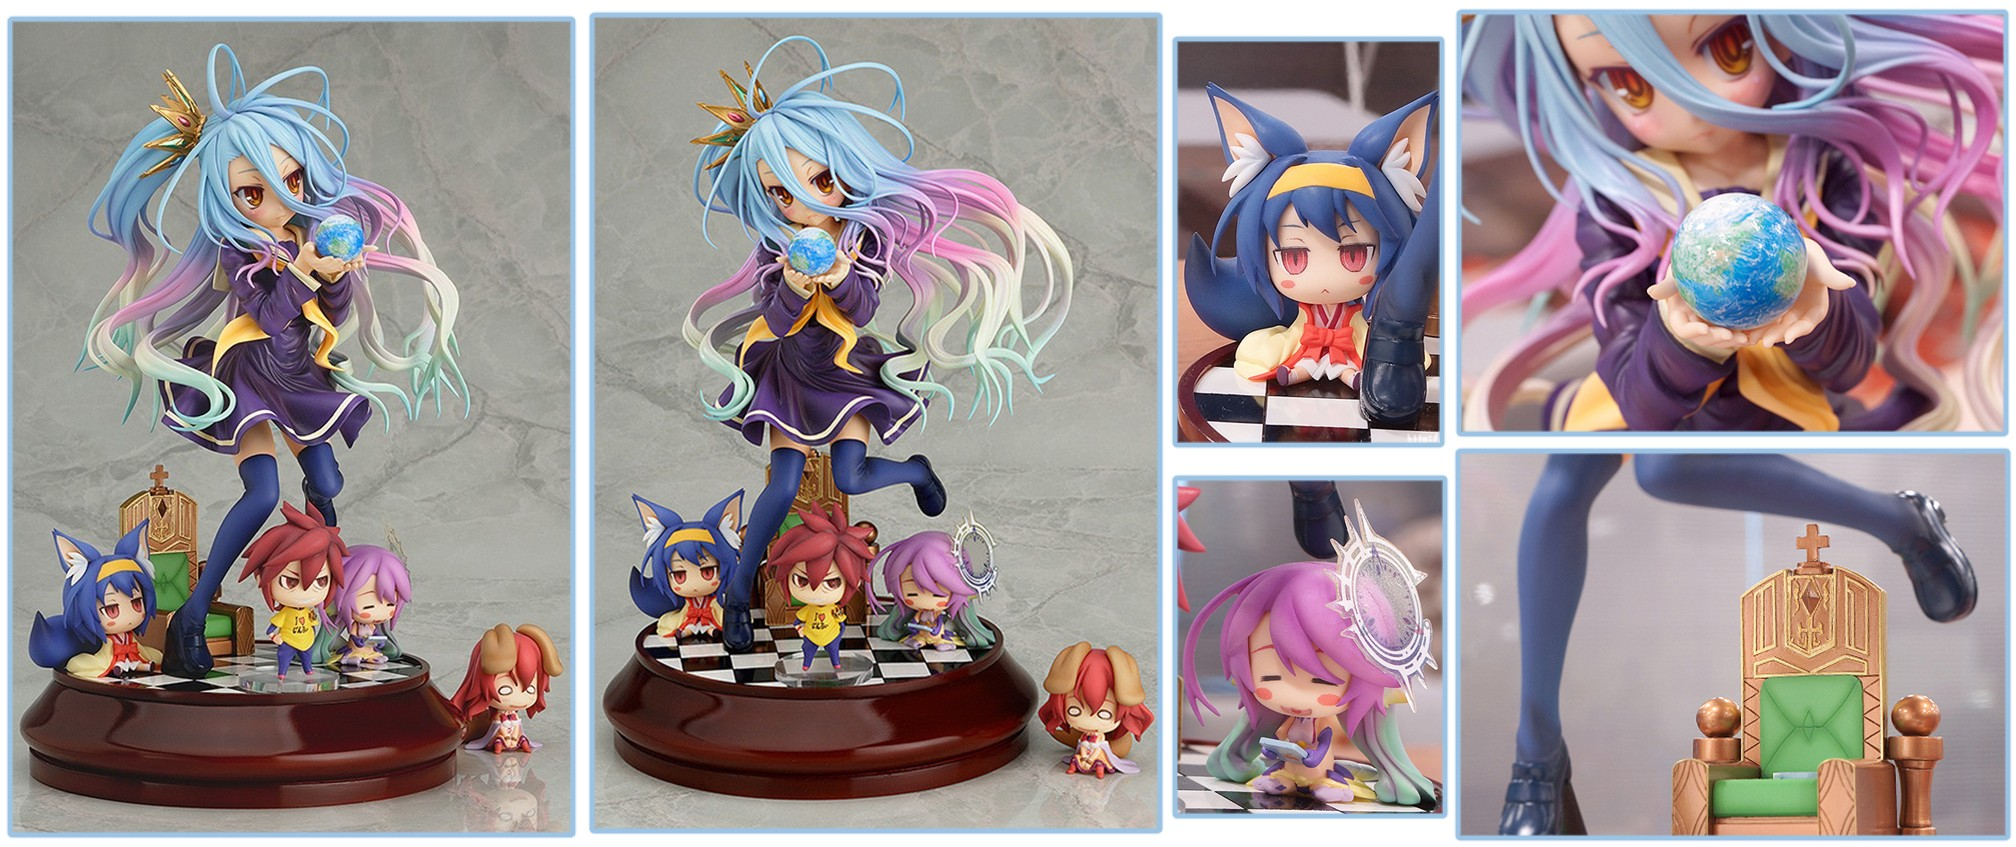 Phat Company – No Game No Life 1/7-scale Shiro Figure (March 2018 Re-release)